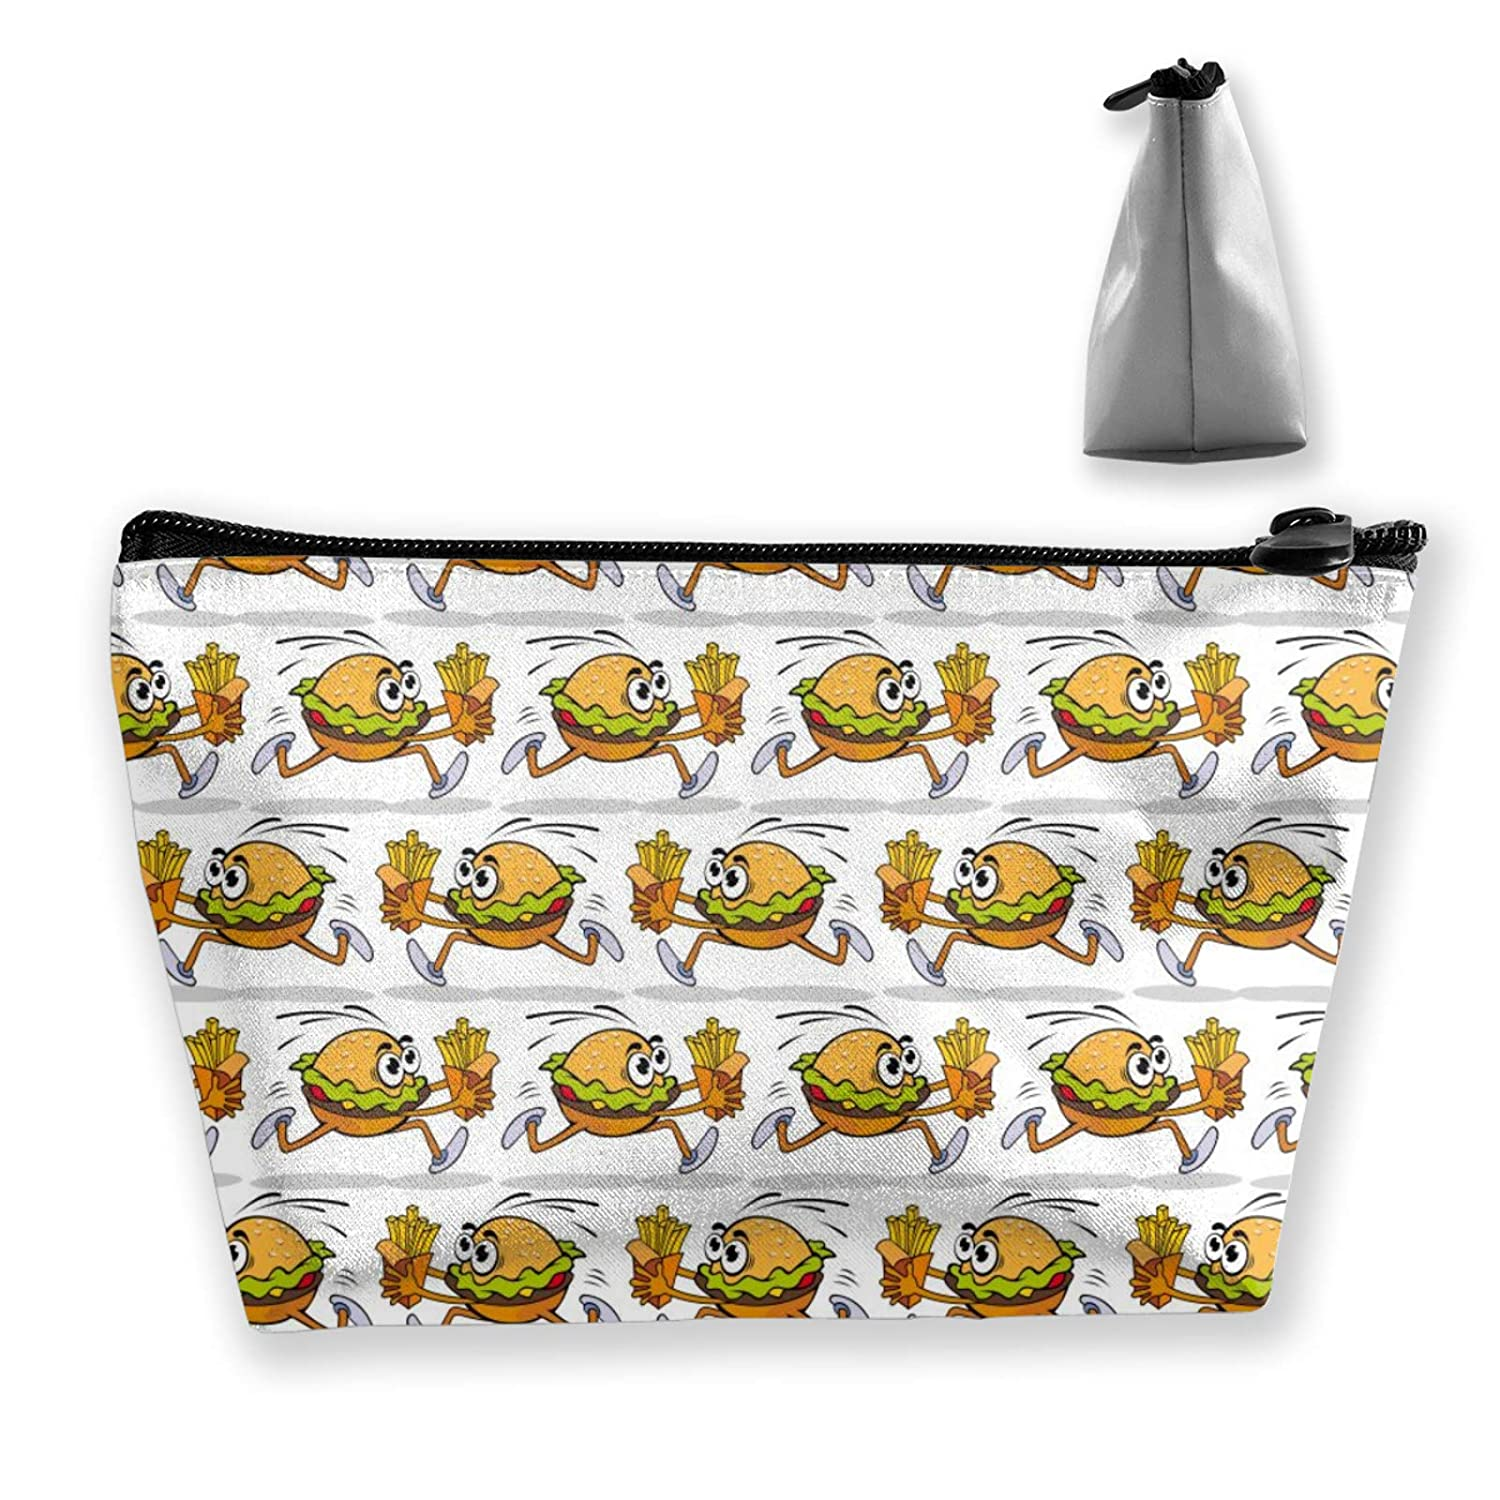 Women Funny Running Burger With French Fries Toiletry Bag Holder Multifunction Travel Makeup For Cosmetics Digital Accessories Trip